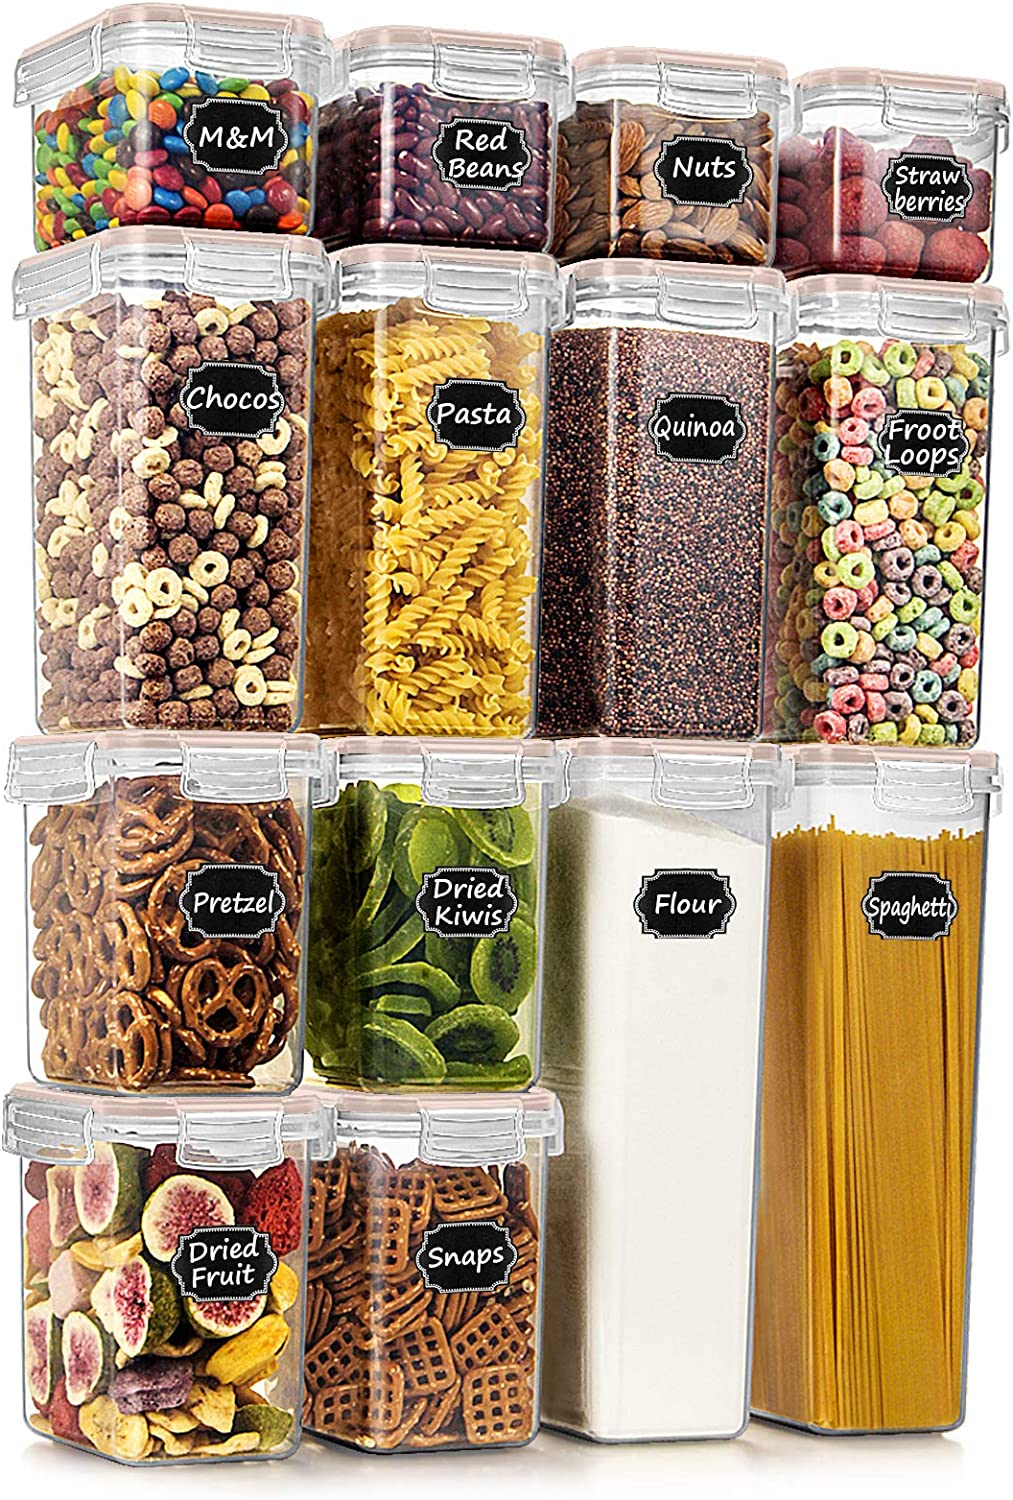 Wildone Airtight Food Storage Containers - BPA Free Cereal & Dry Food Storage Containers Set of 14 for Sugar, Flour, Snack, Baking Supplies, Khaki Lid with 20 Chalkboard Labels & 1 Marker